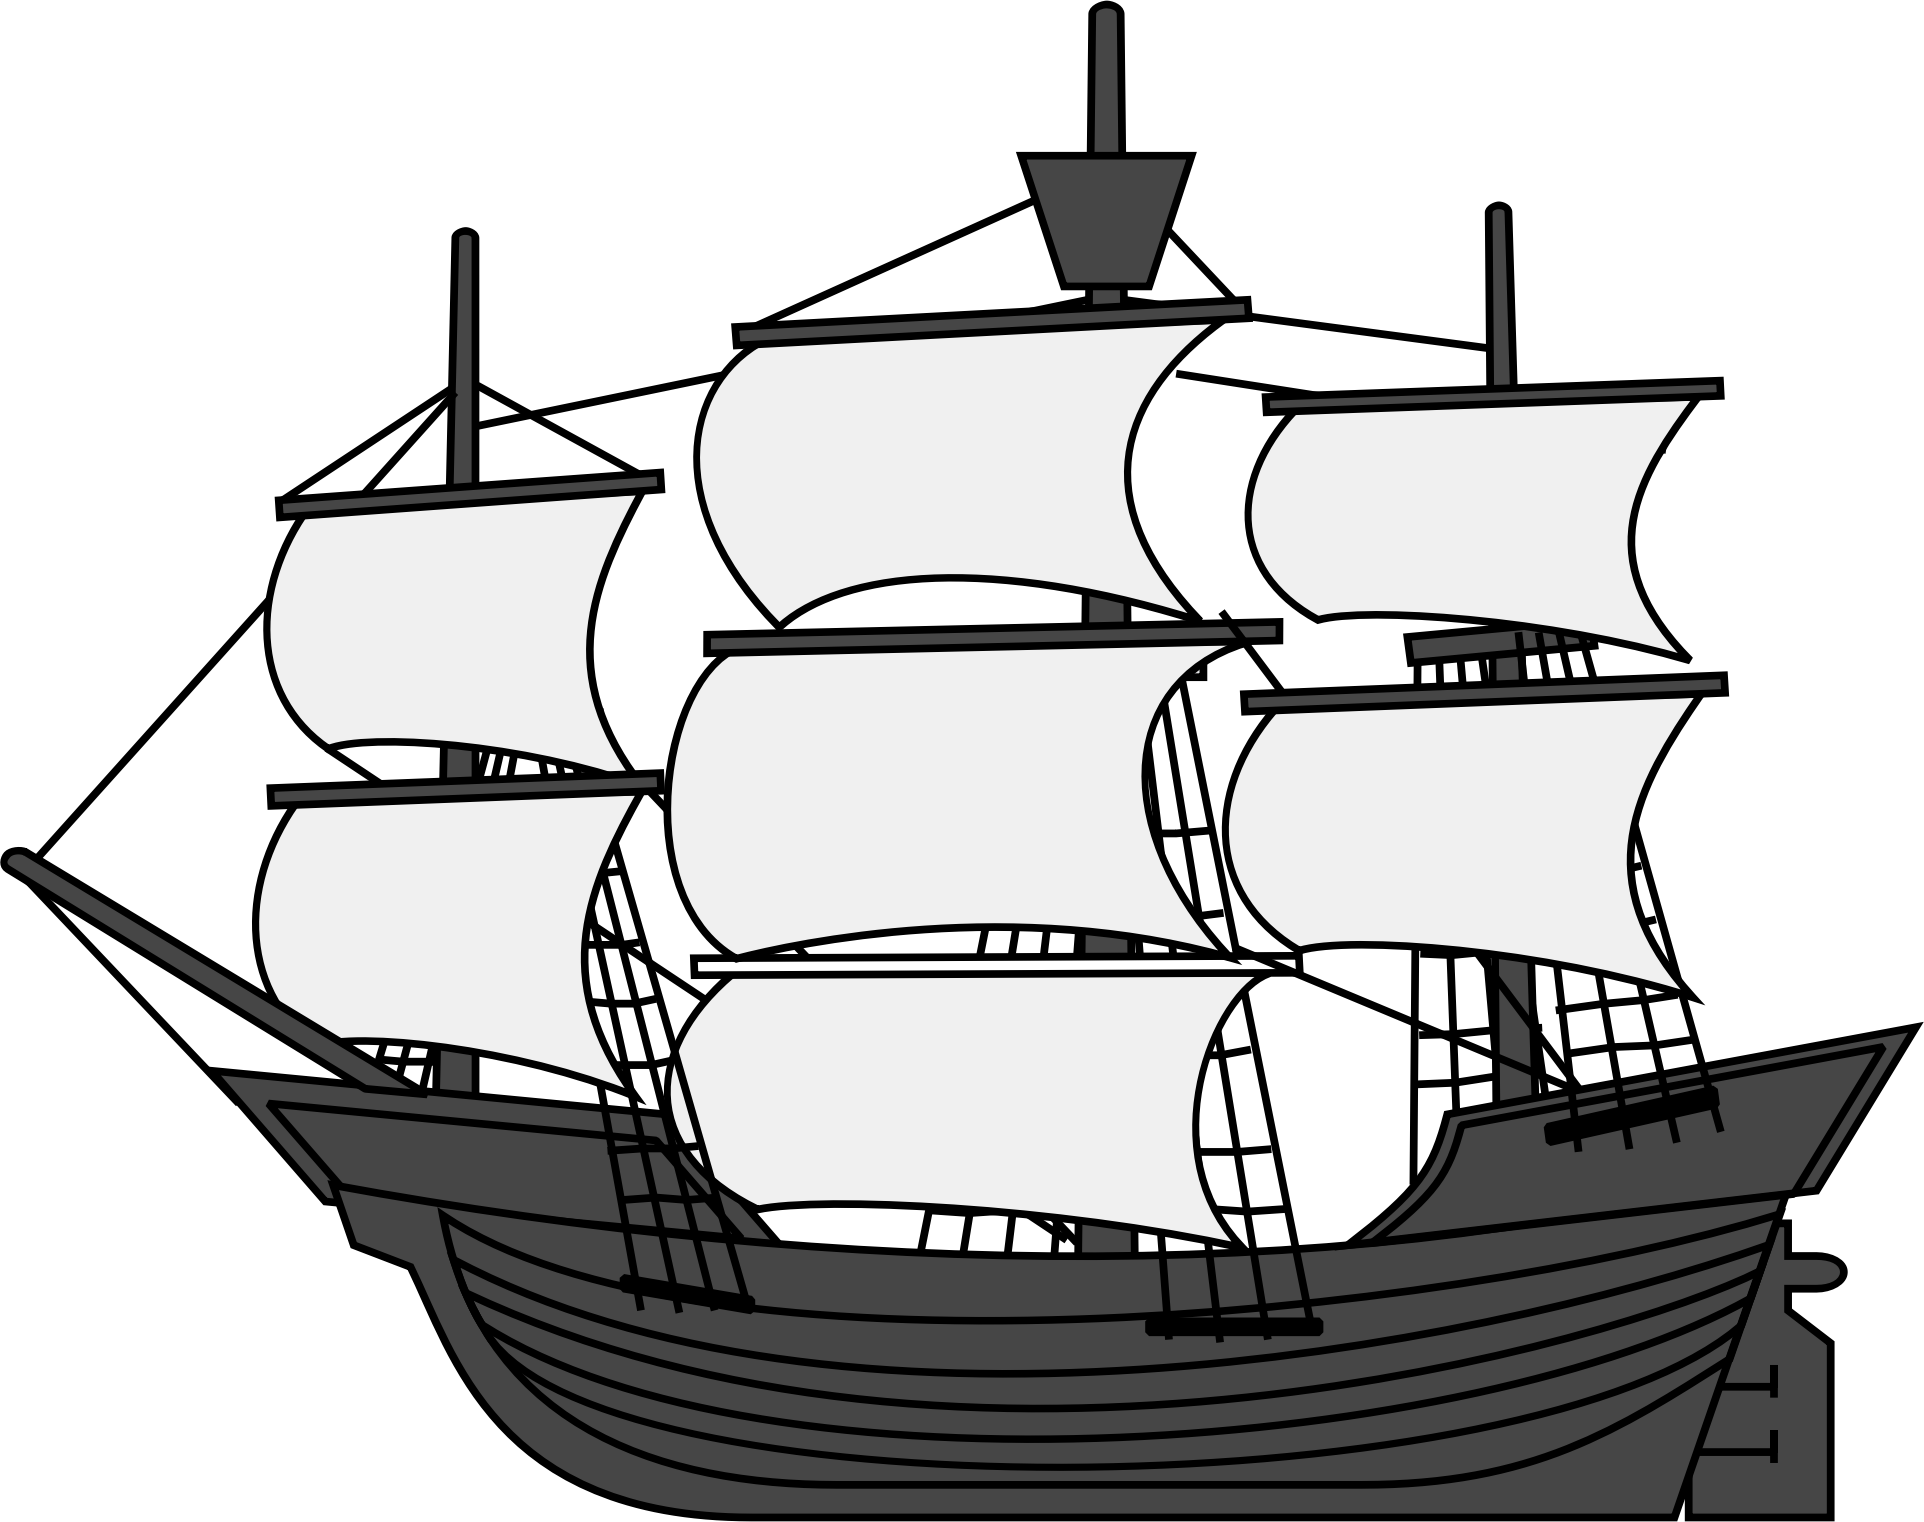 Clipart boat ship, Clipart boat ship Transparent FREE for ...